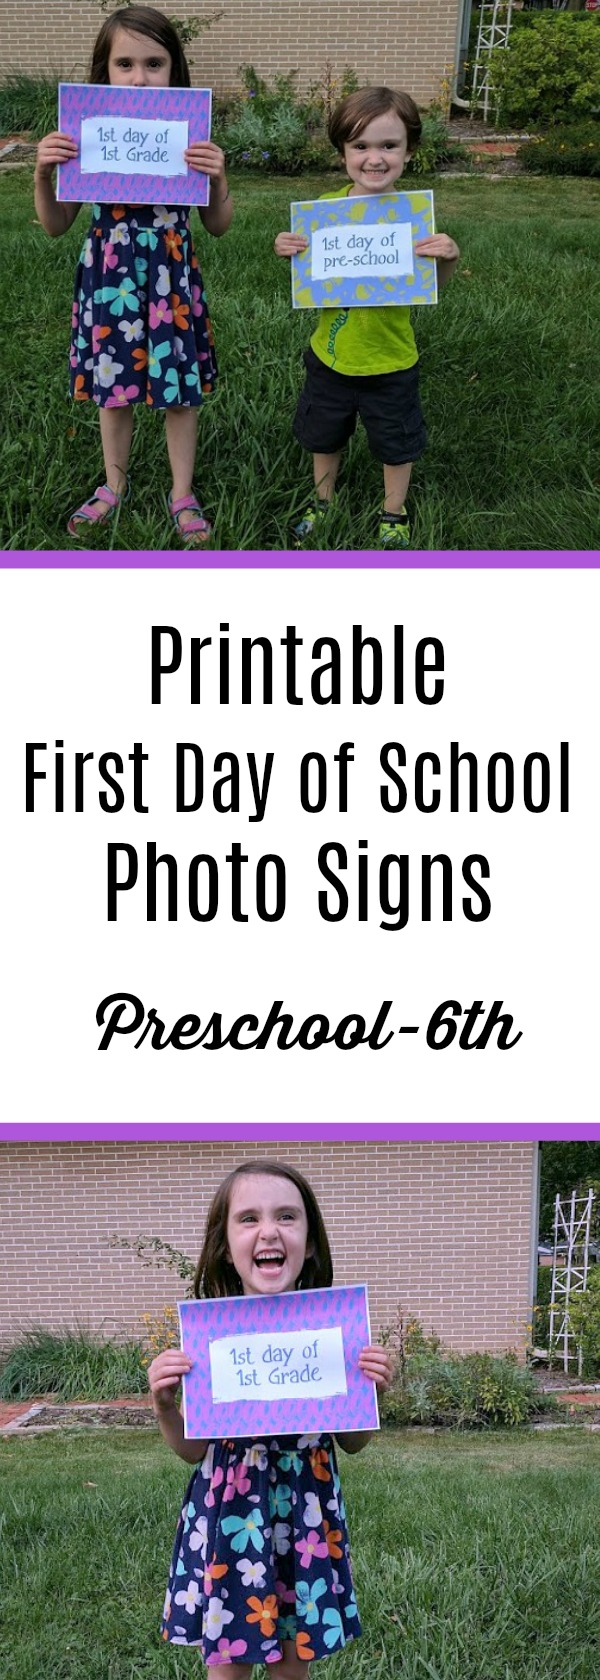 Looking for a simple way to make back to school memorable? Use these First Day of School printable photo signs to capture fun memories of your kids. These free printable signs have grade specific options that you can use year to year. Get preschool through sixth grade plus first day of middle school, high school, and college.